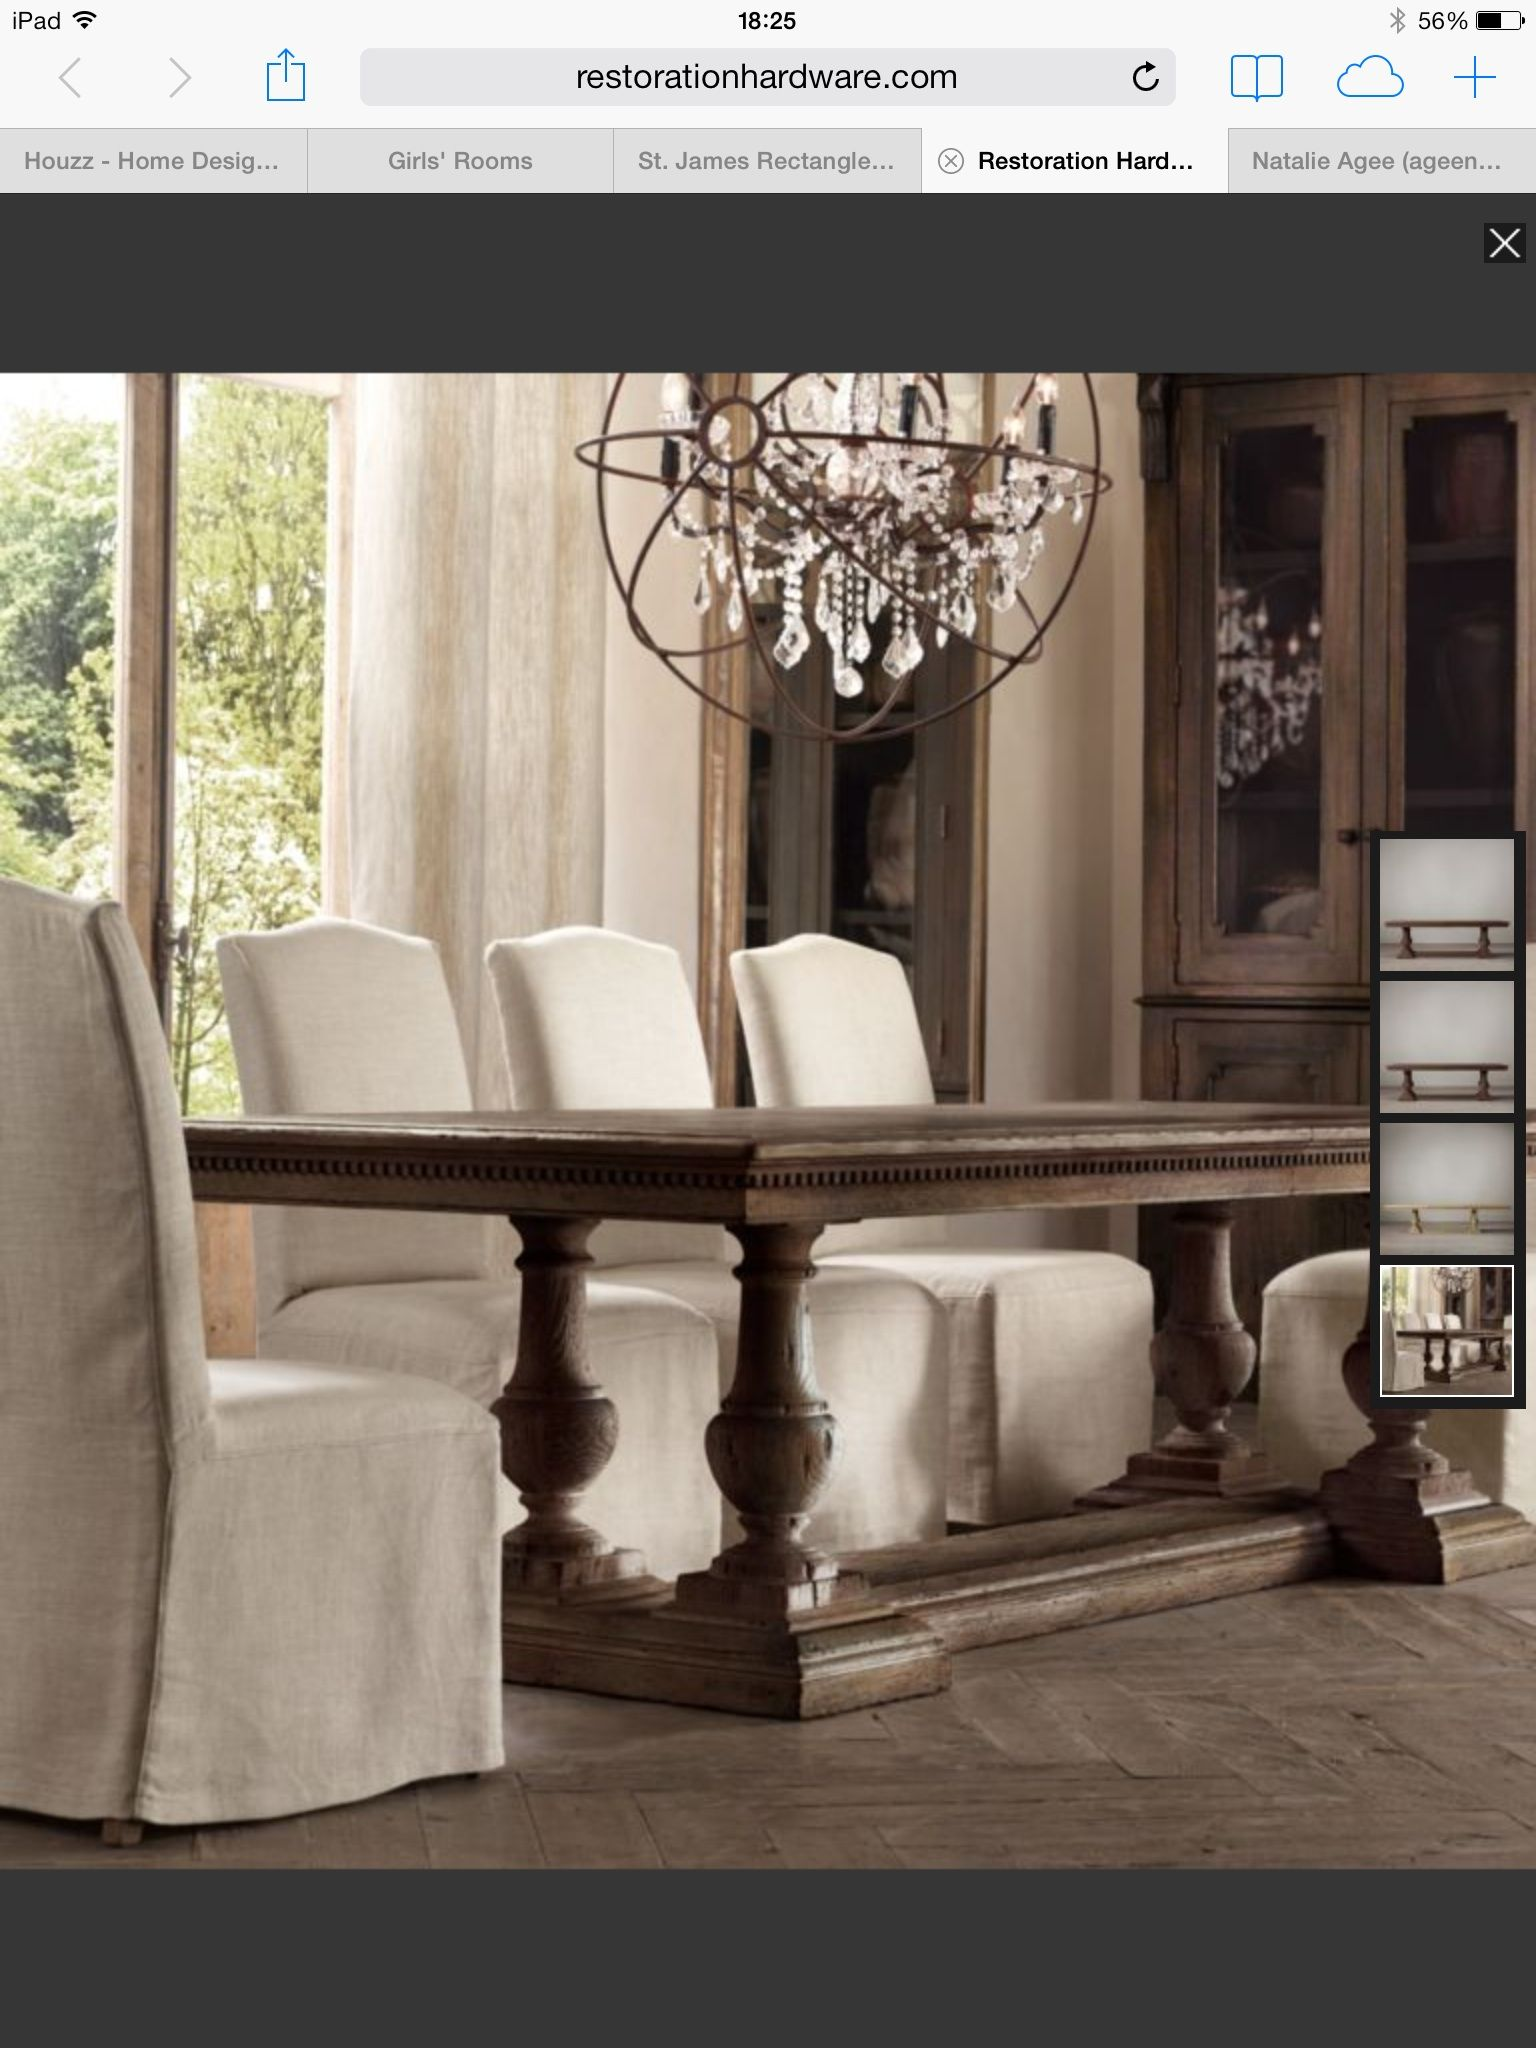 St James Dining Table In Antique Coffee From Rh Like This Look For 156